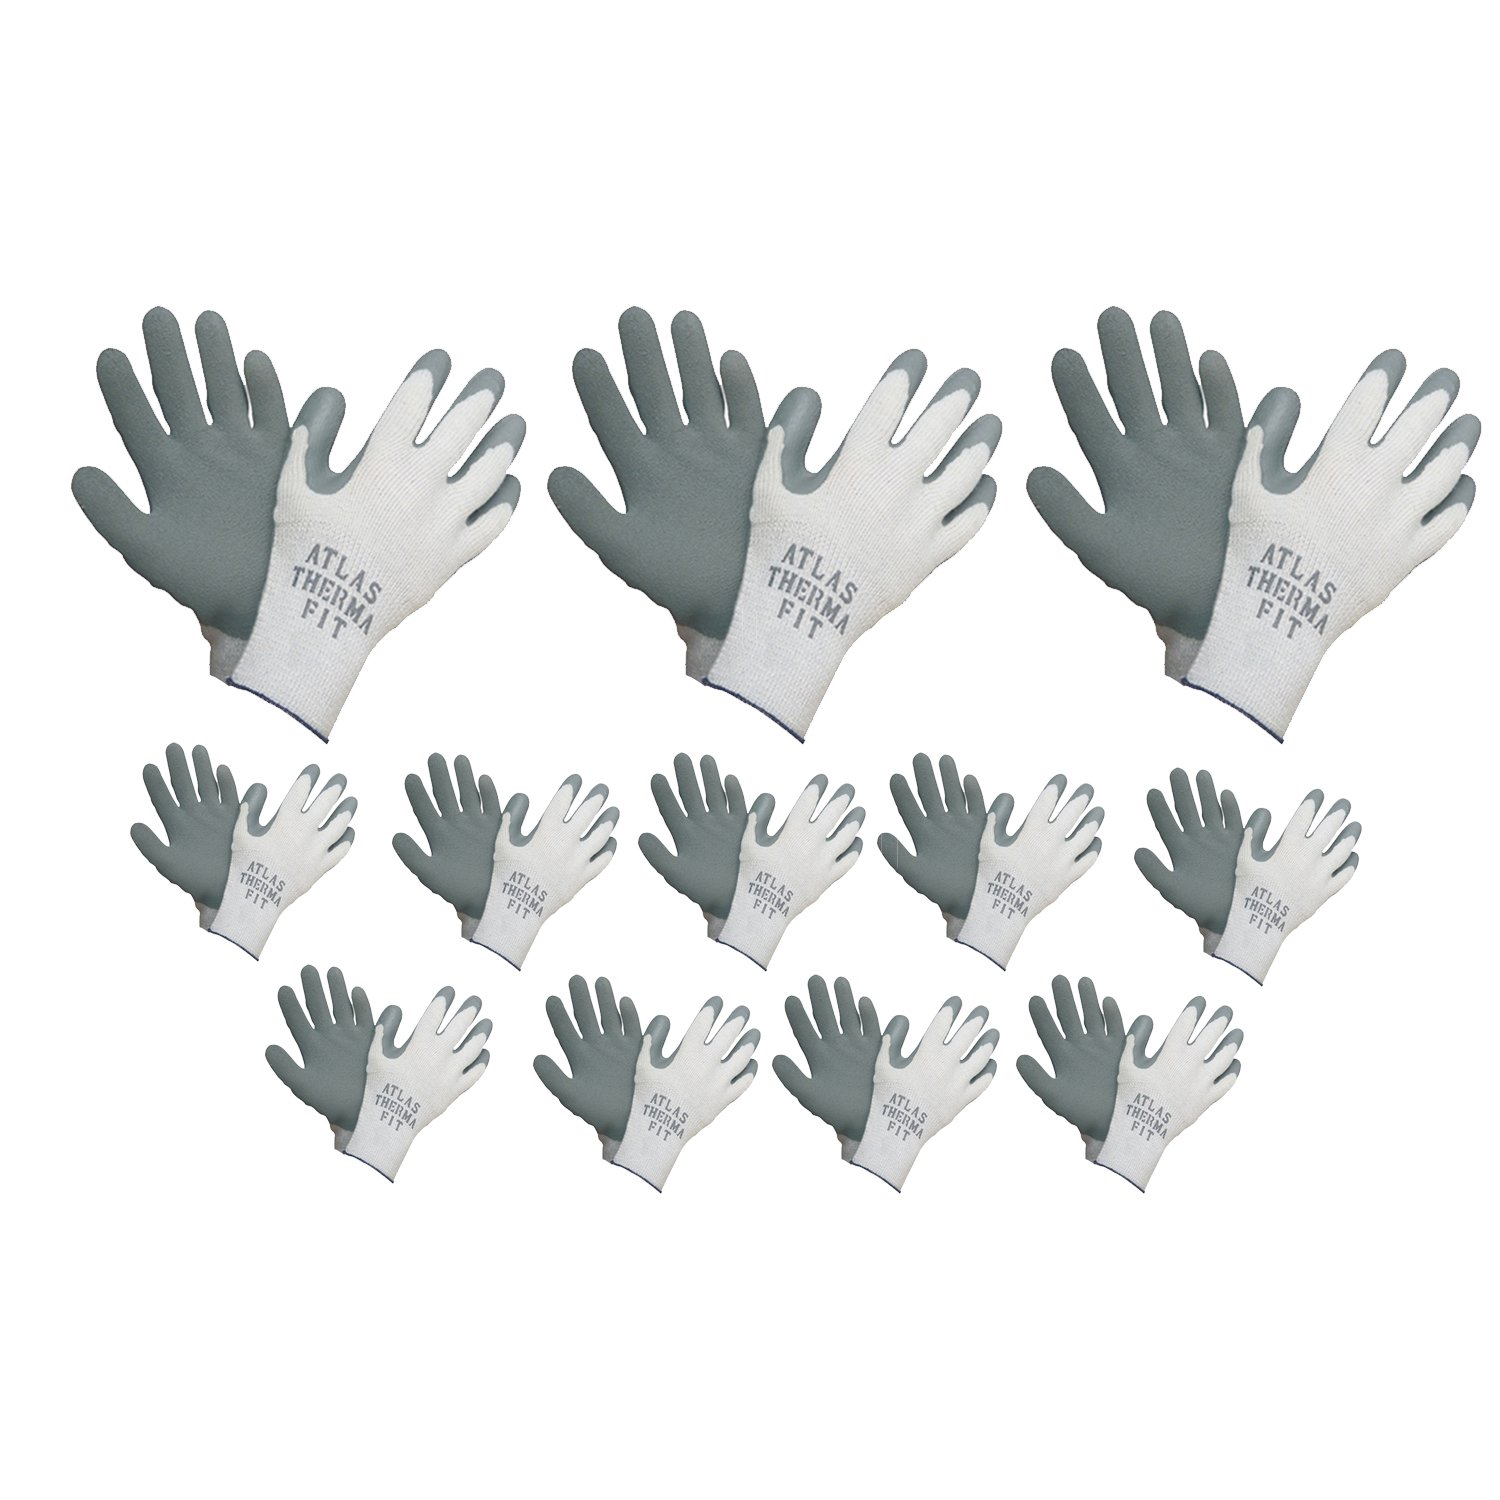 Max 60% OFF Showa Atlas 451 Gray Thermal Pair Gloves Small Work 12 Animer and price revision